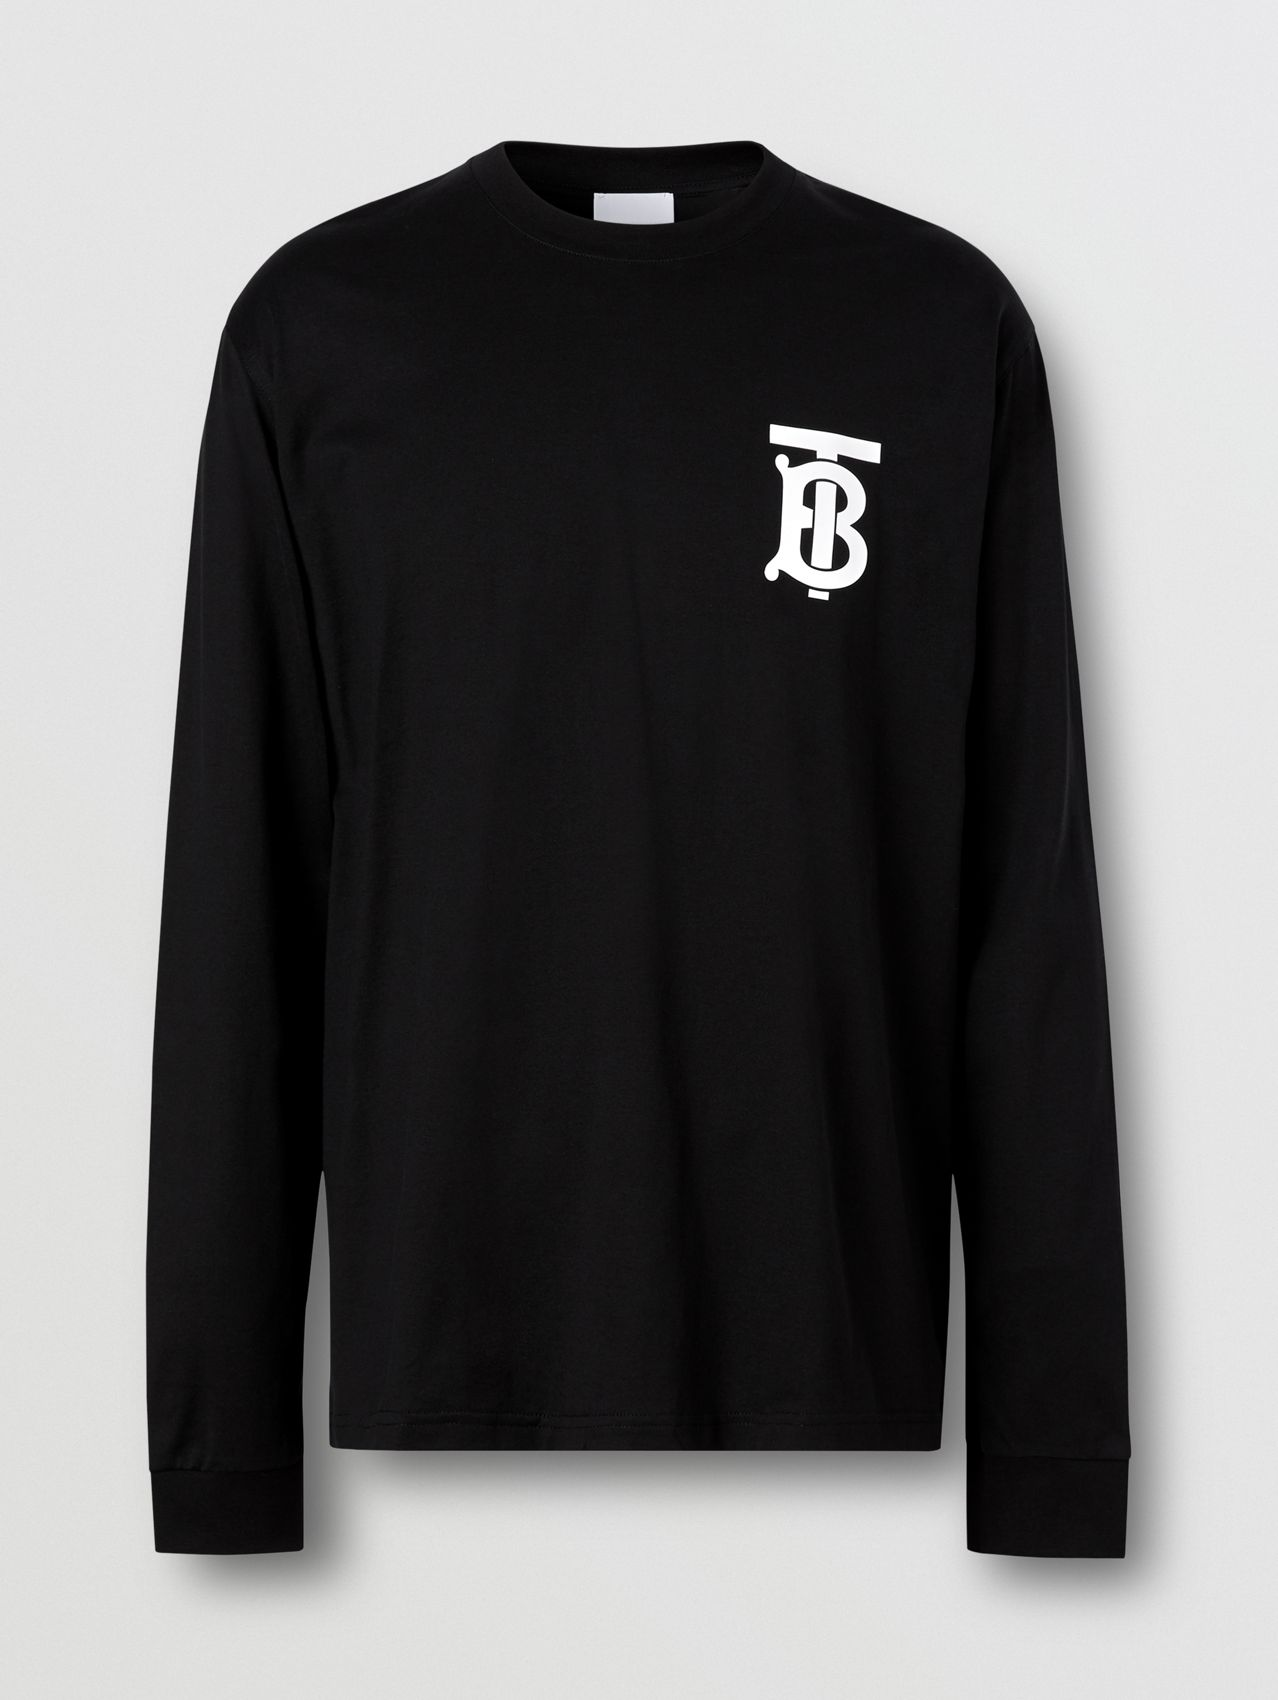 Long-sleeve Monogram Motif Cotton Top in Black